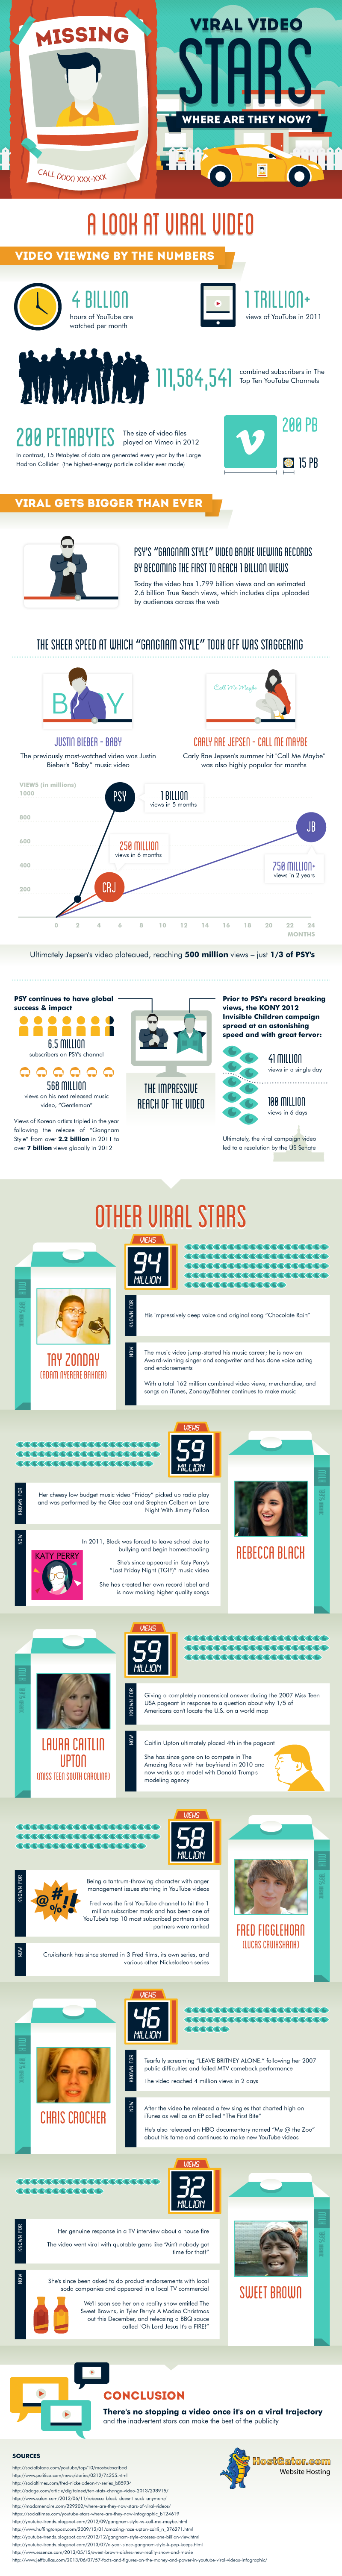 Infographic: Viral Video Stars Where Are They Now?